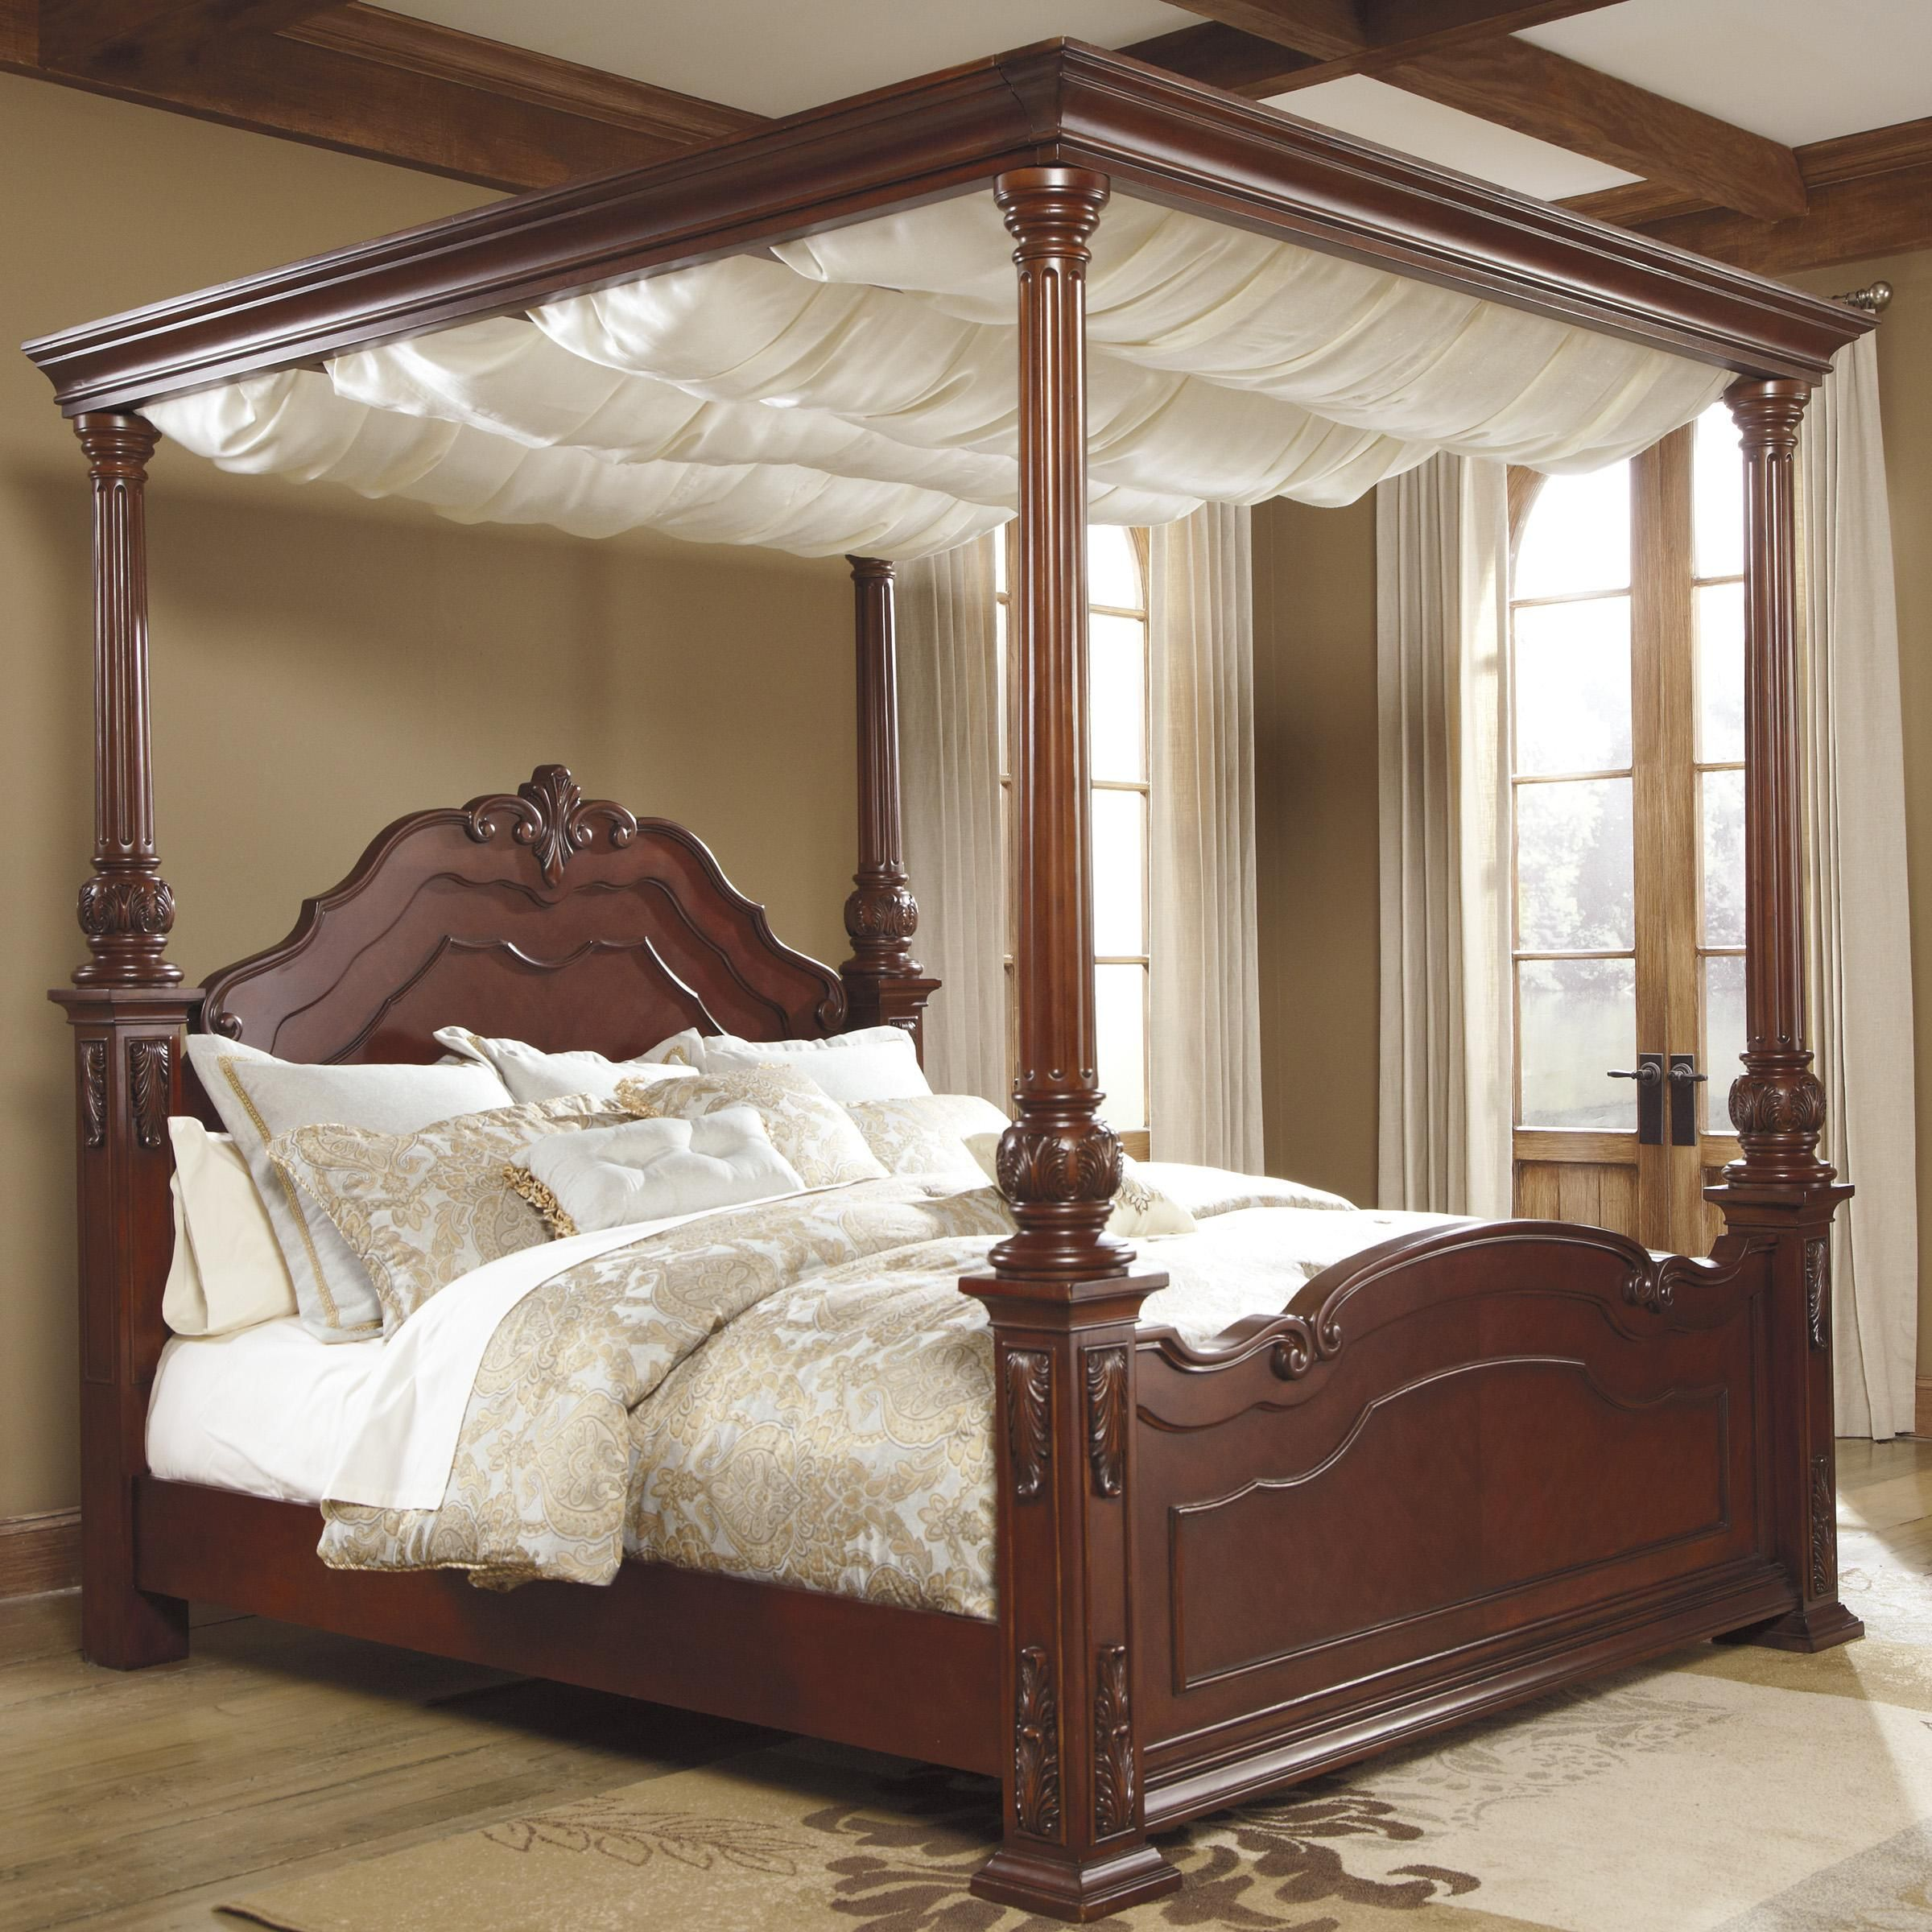 Bedroom Furniture South Africa Bedroom Curtain Ideas Small Windows Black Hardwood Flooring Bedroom Bedroom Colour Trends 2017: Elegant Canopy Bed Curtains King With Majestic Cream Color